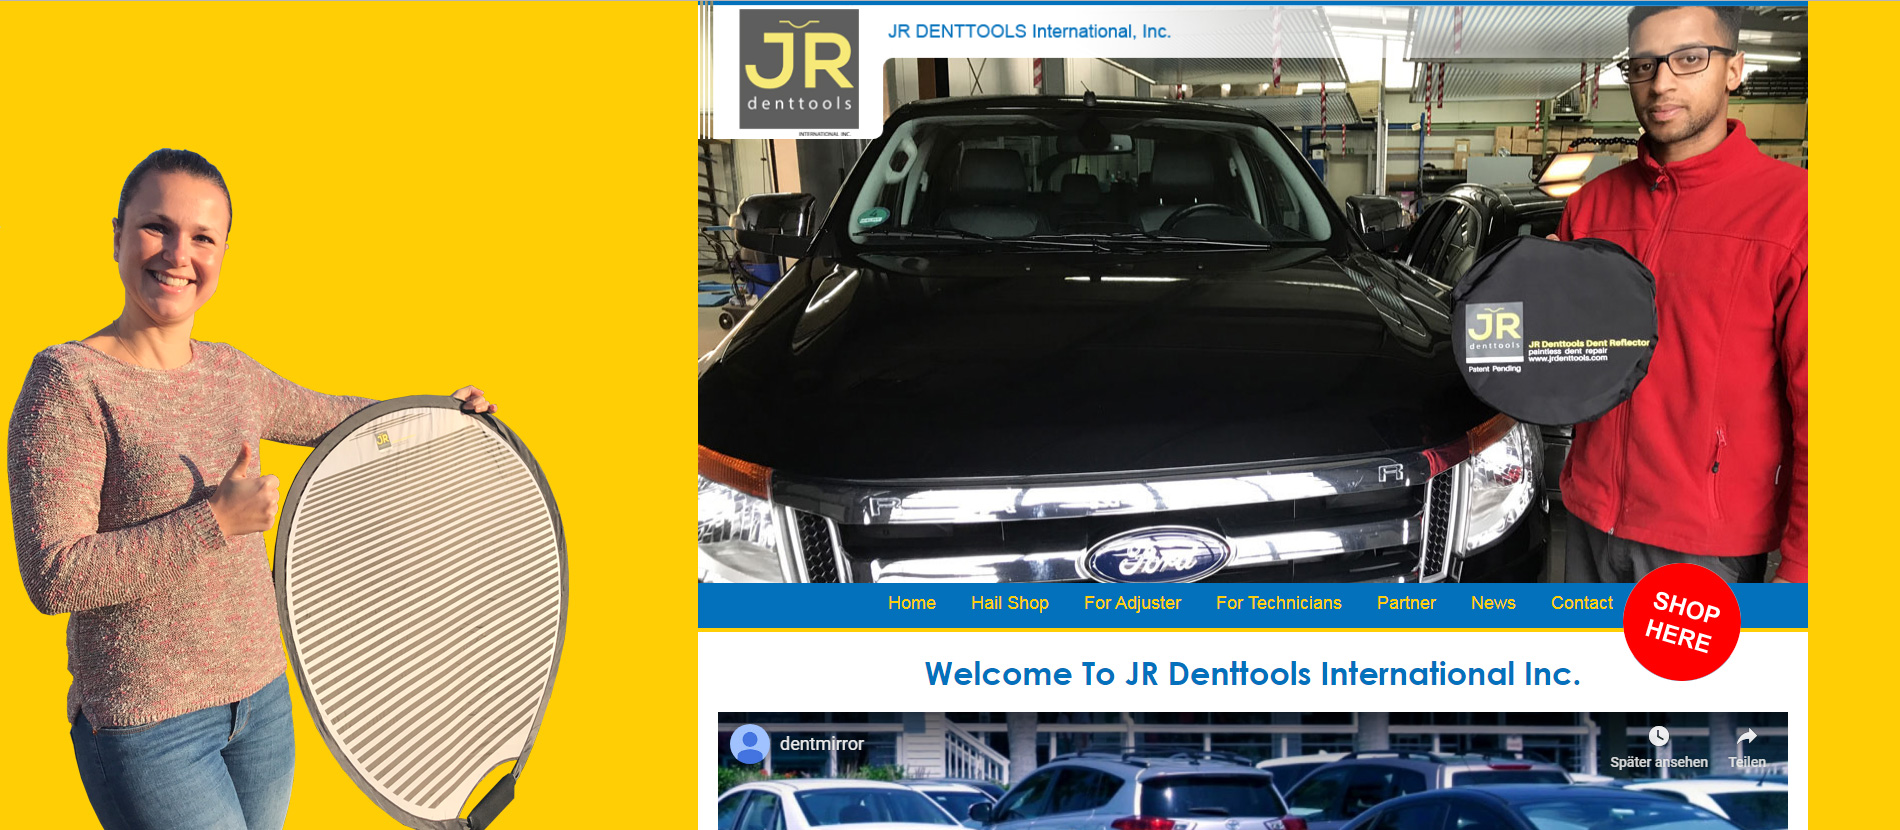 JR Denttools International